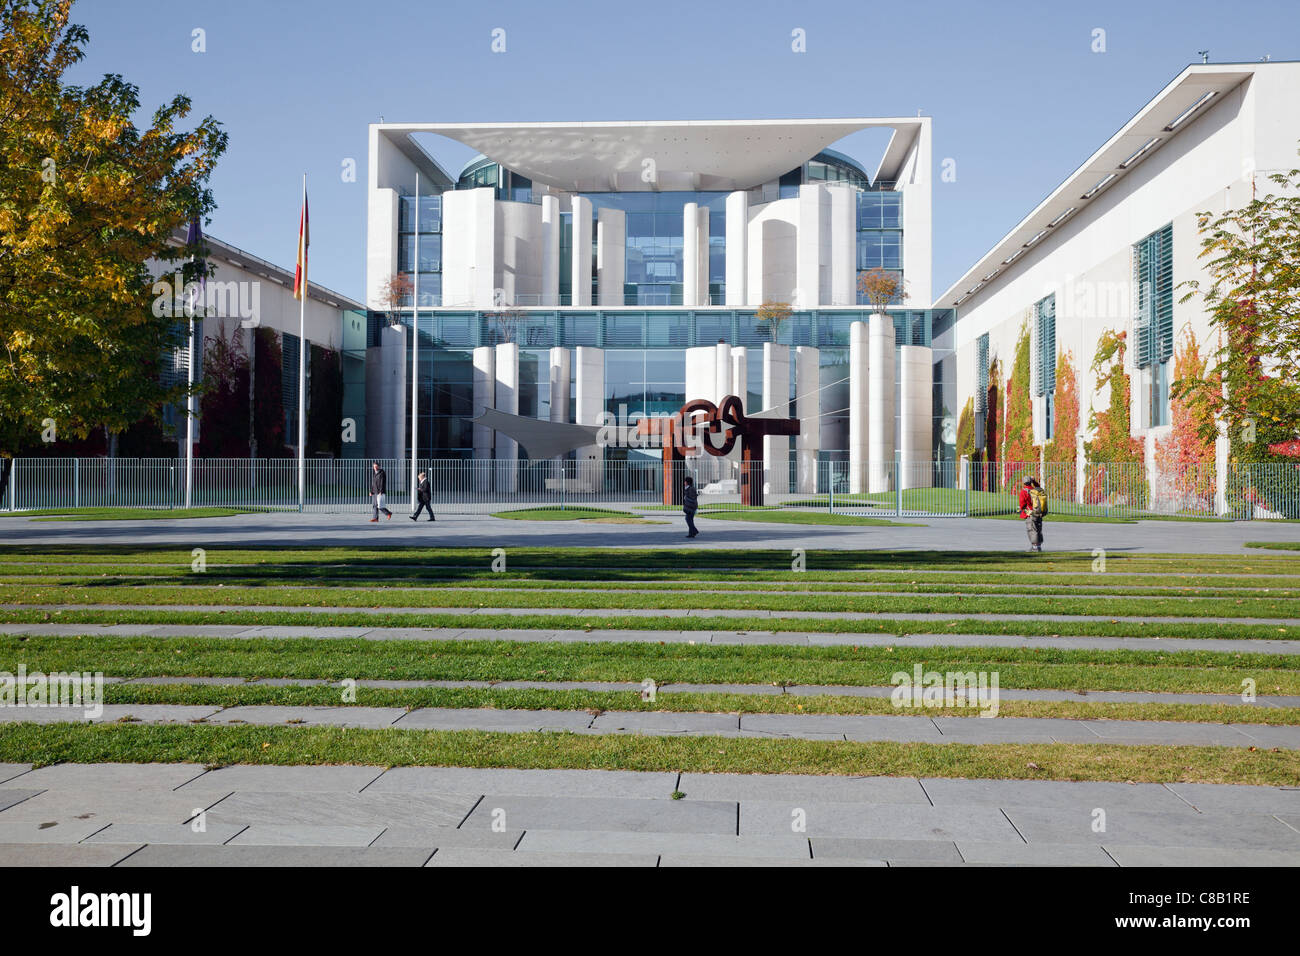 Bundeskanzleramt, Berlin, Germany Stock Photo